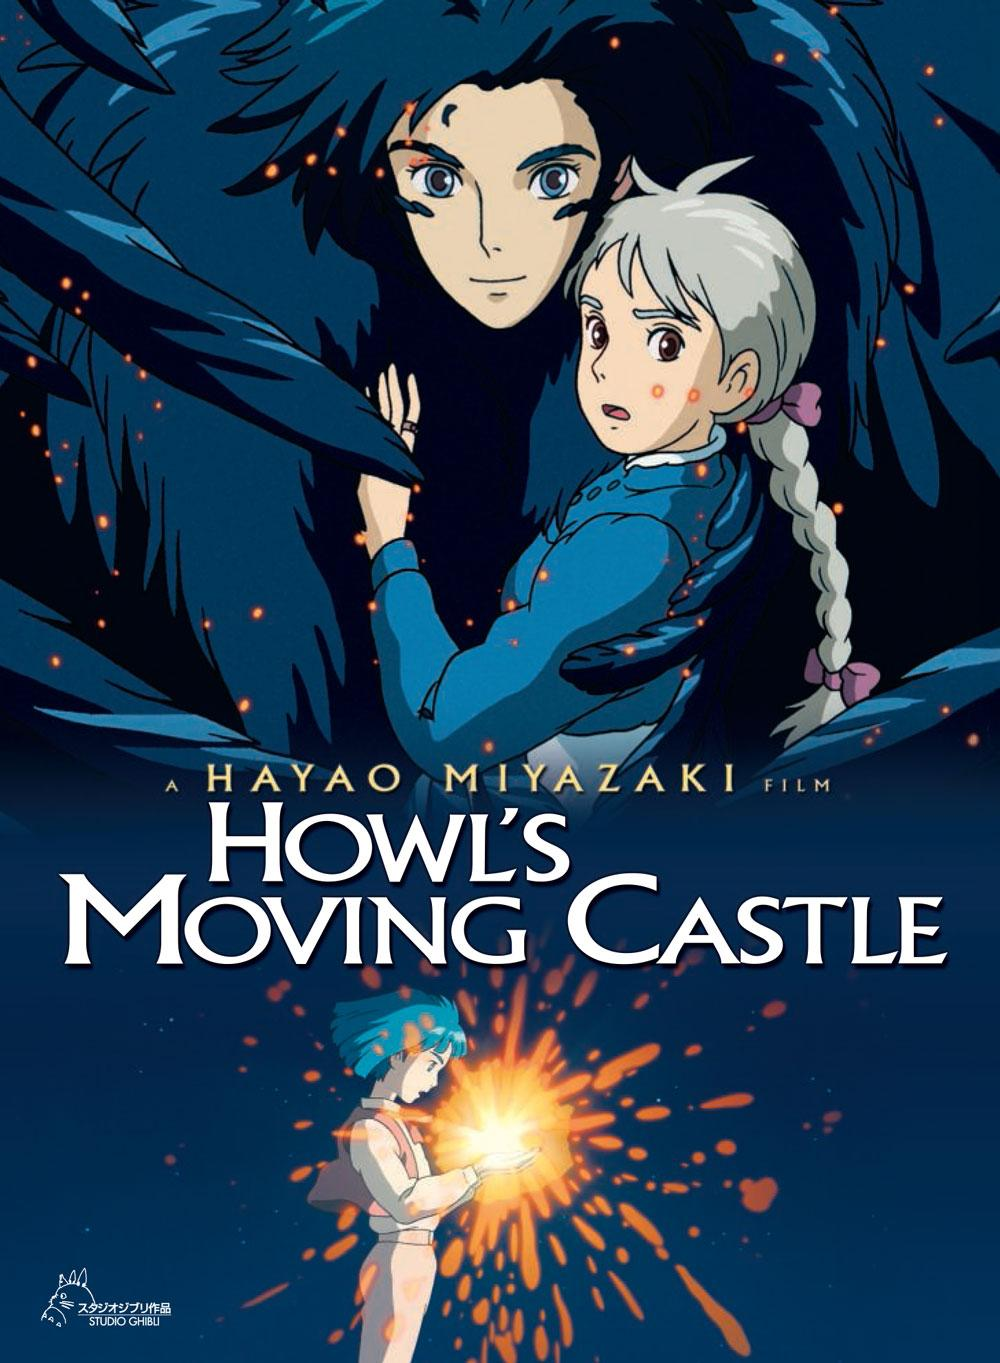 Photo courtesy of www.movies.disney.com/holws-moving-castle.